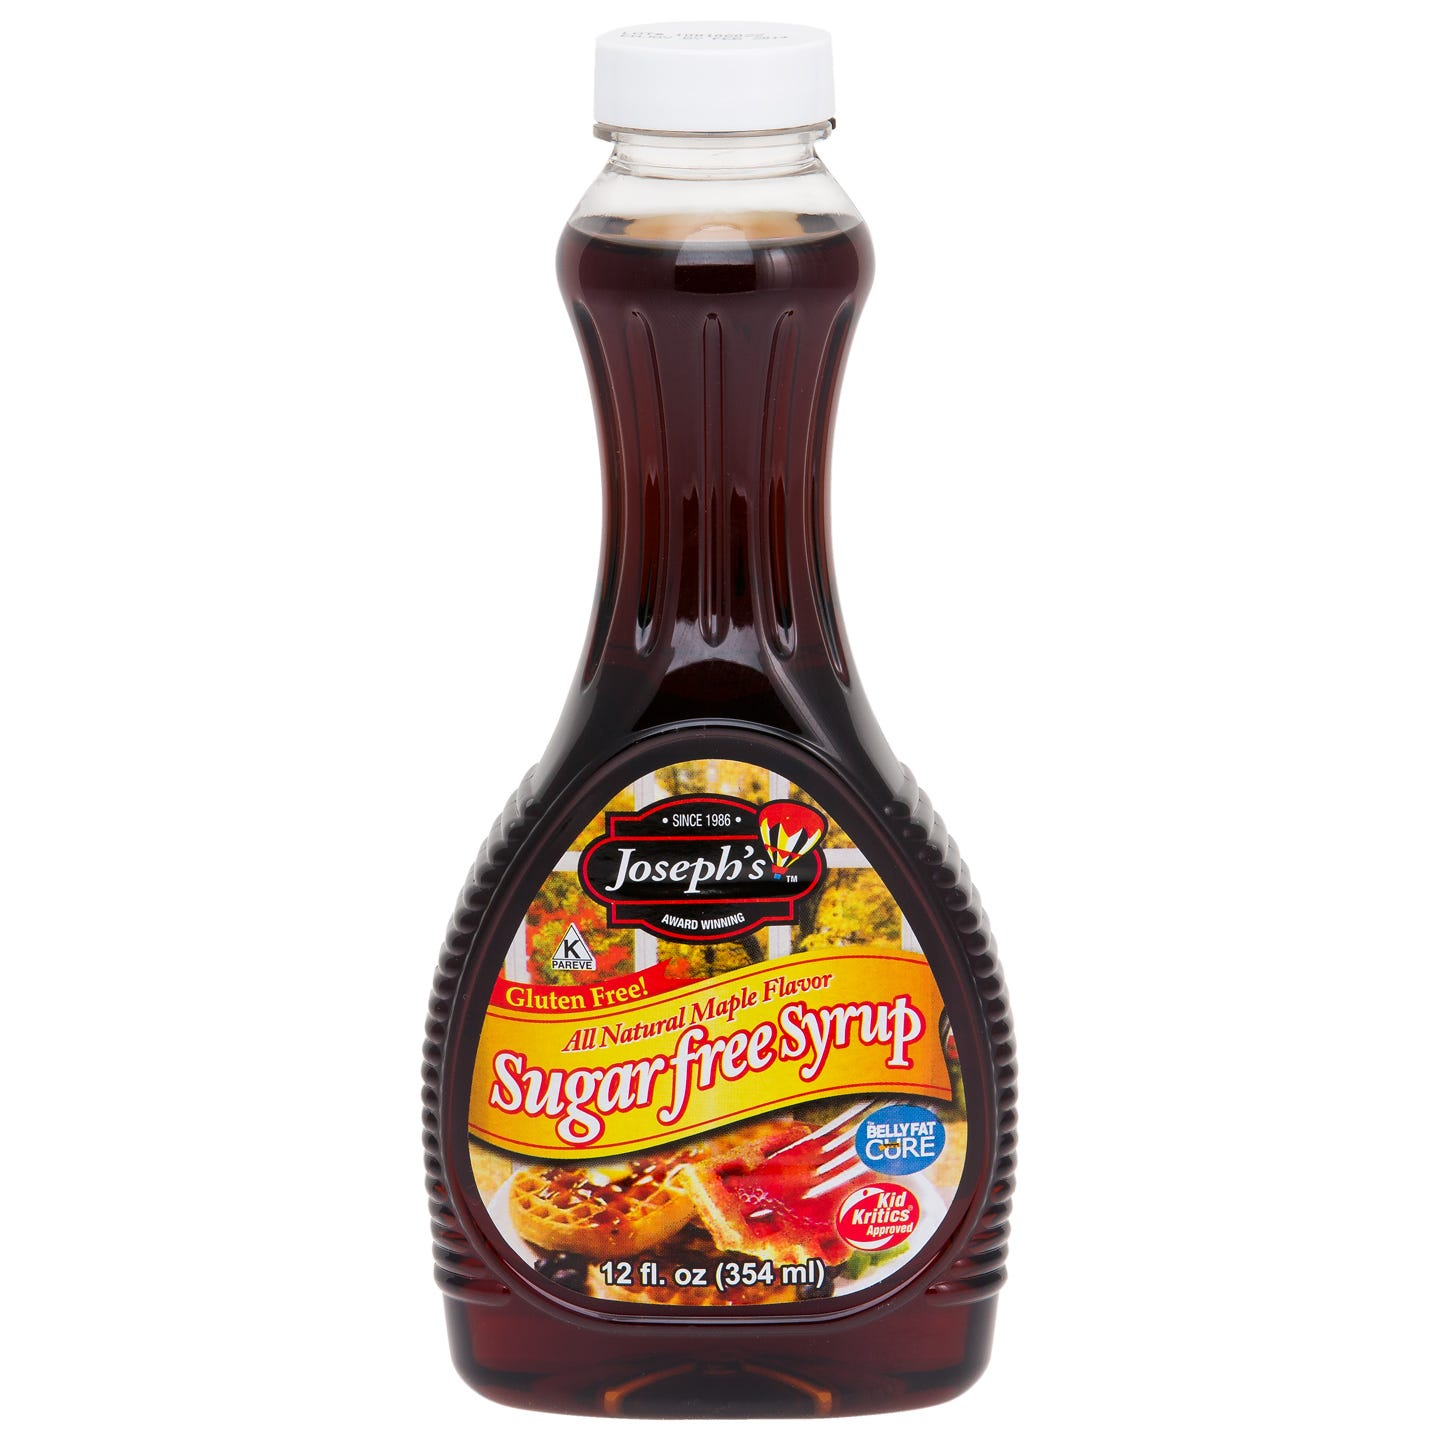 Sugar Free Maple Syrup 12 oz, Joseph's Original - Rapid Diet Weight Loss Products Shop